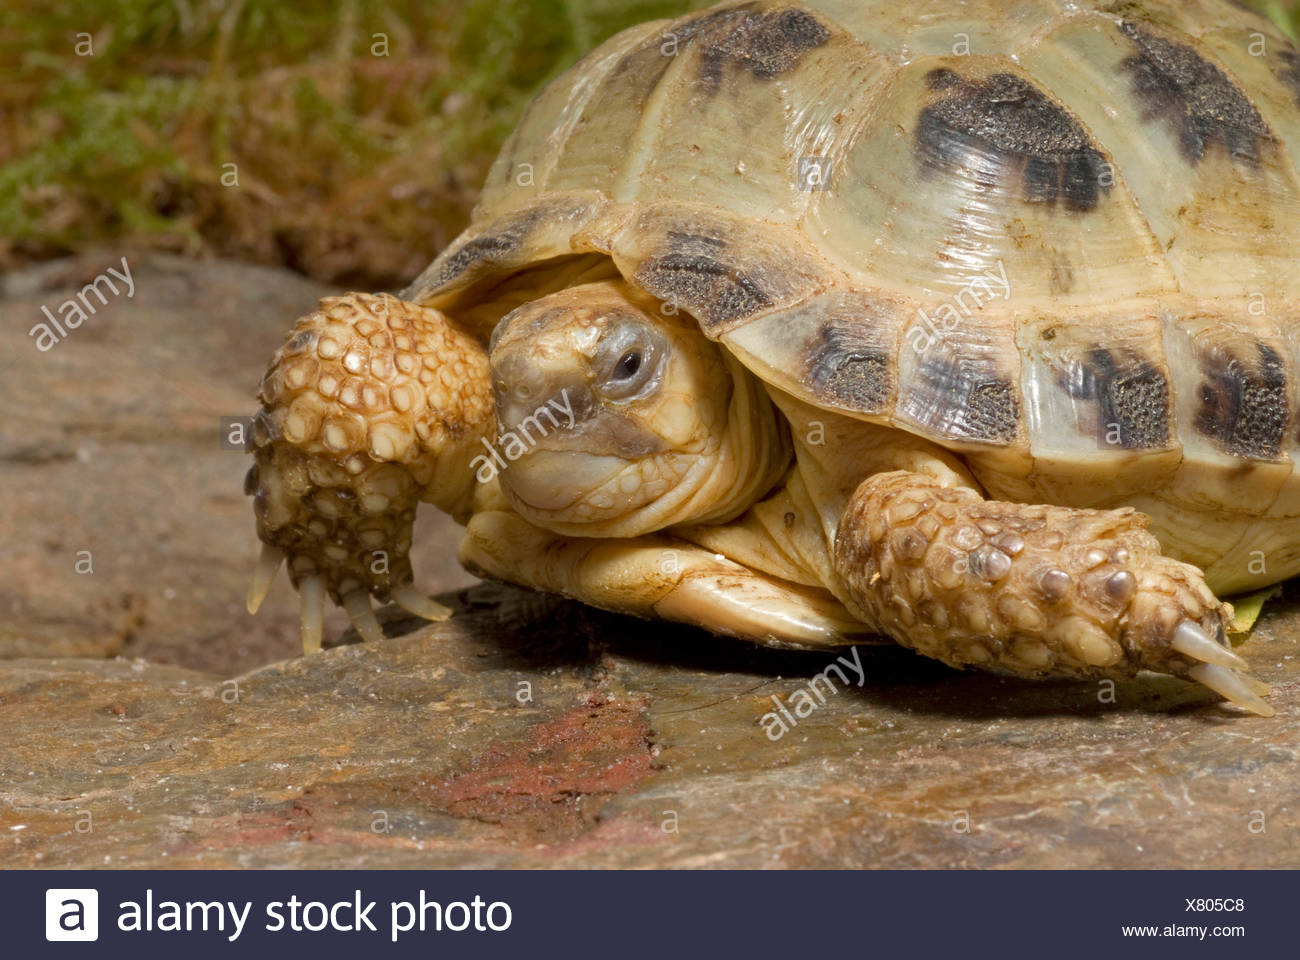 Horsfield's tortoise, four-toed tortoise, Central Asian tortoise (Agrionemys horsfieldi, Testudo horsfieldii), lying on a rock - Stock Image